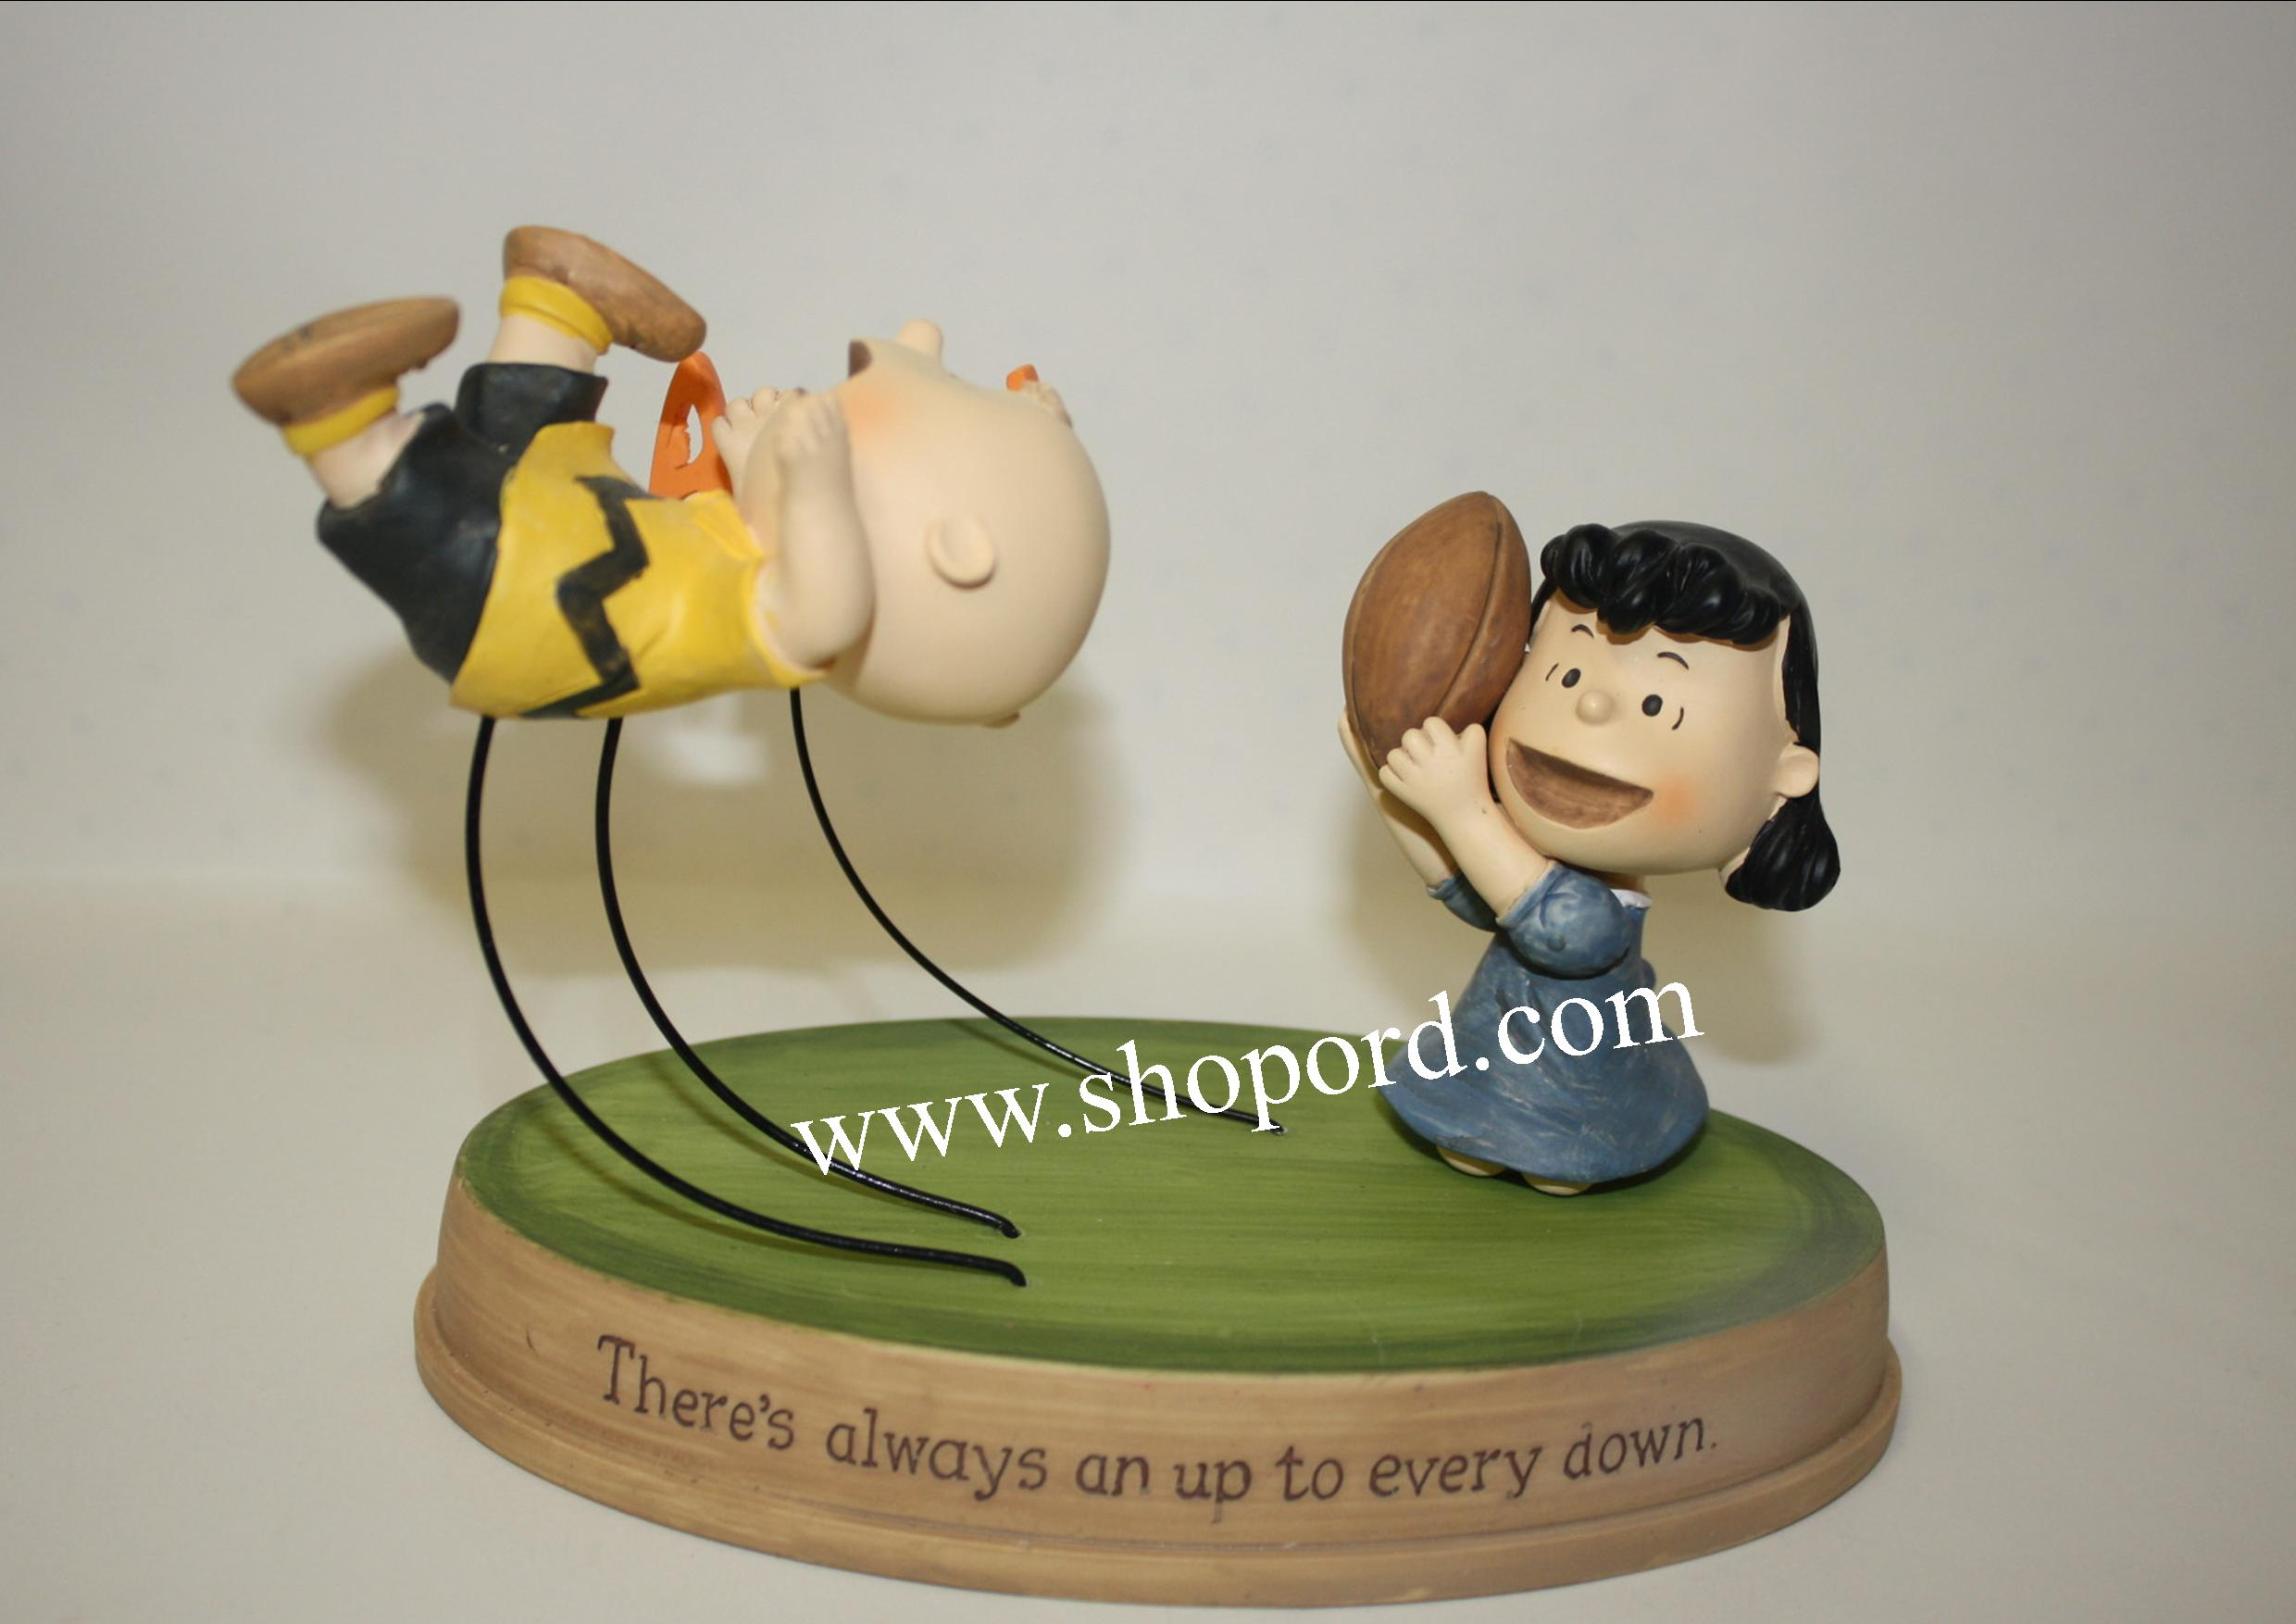 Hallmark Peanuts Charlie Brown and Lucy There's Always An Up To Every Down Figurine PAJ1129